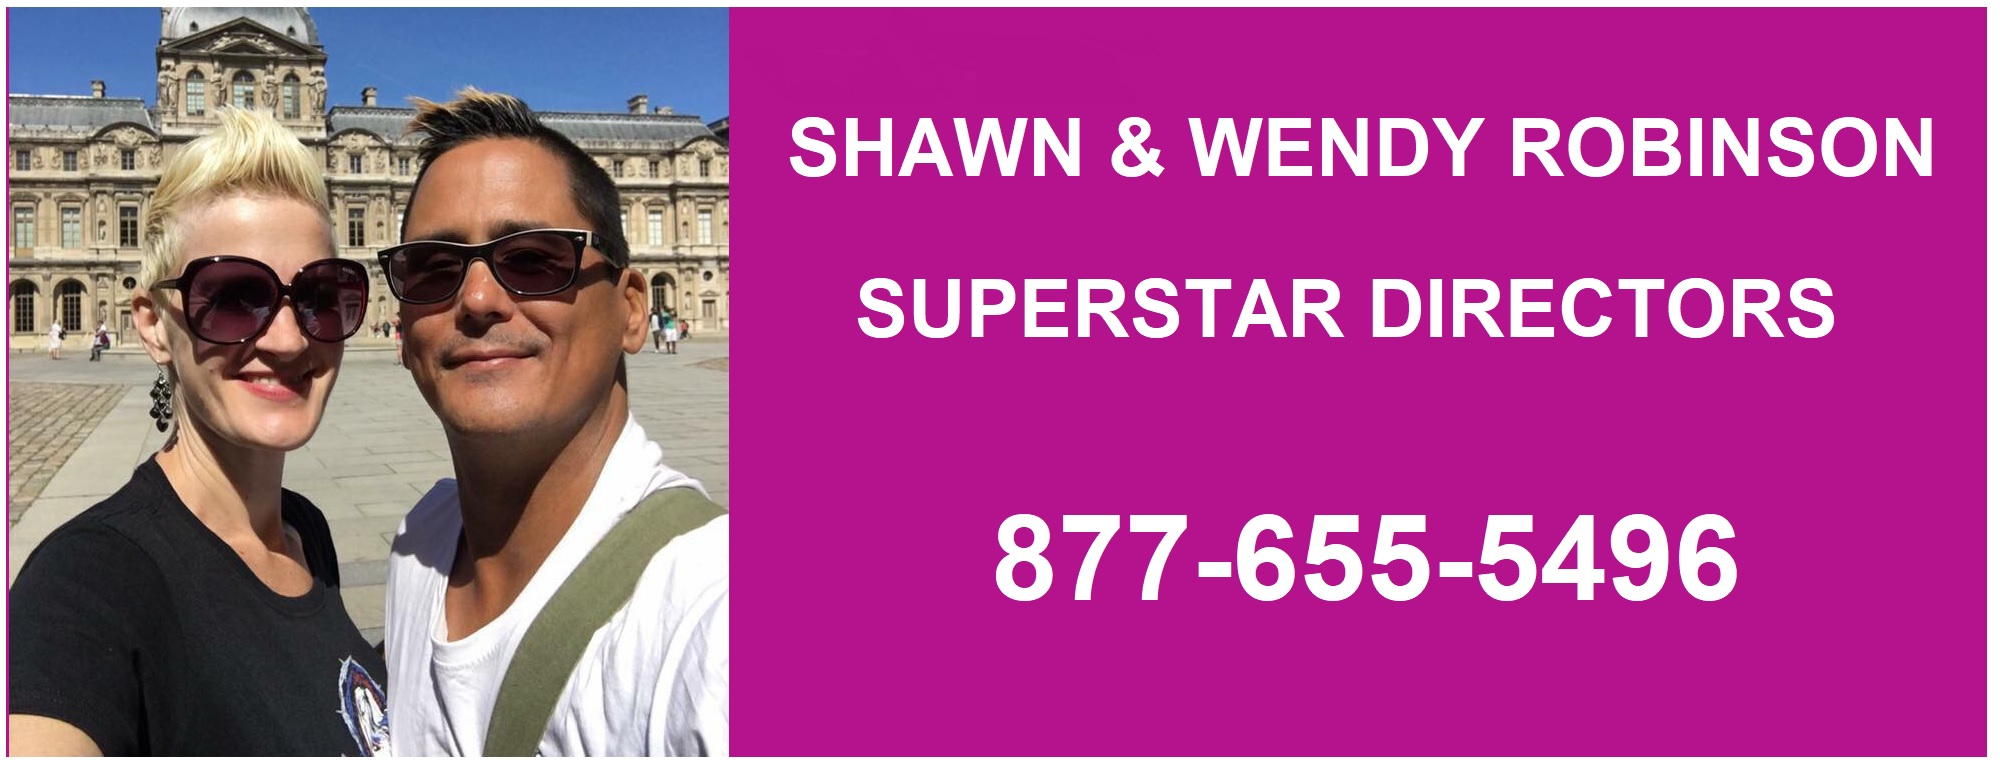 Shawn and Wendy Robinson Scentsy Consultants 877-655-5496